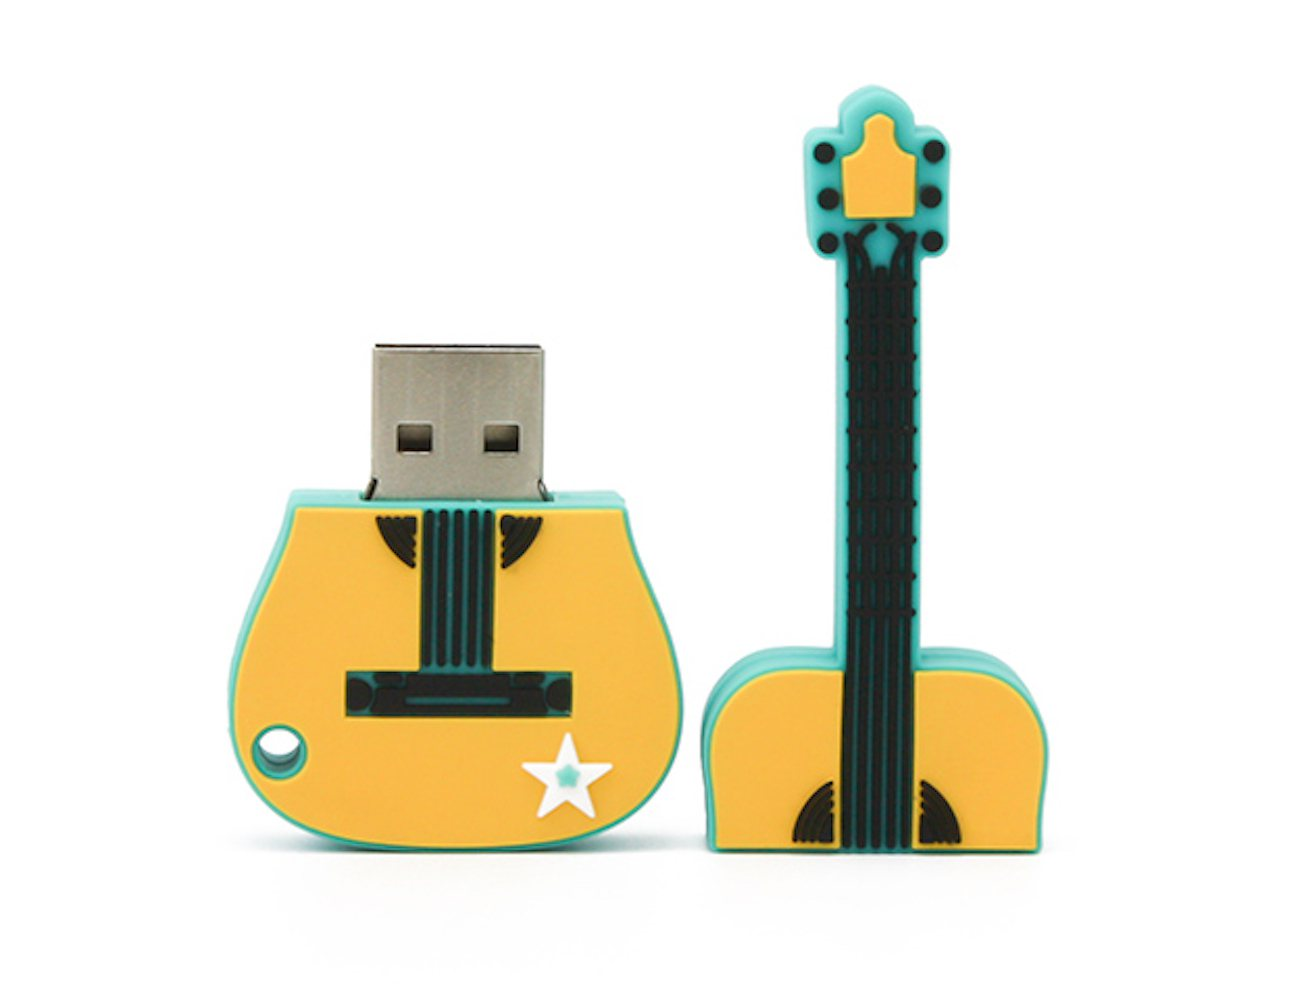 3D Custom Shaped USB Drives